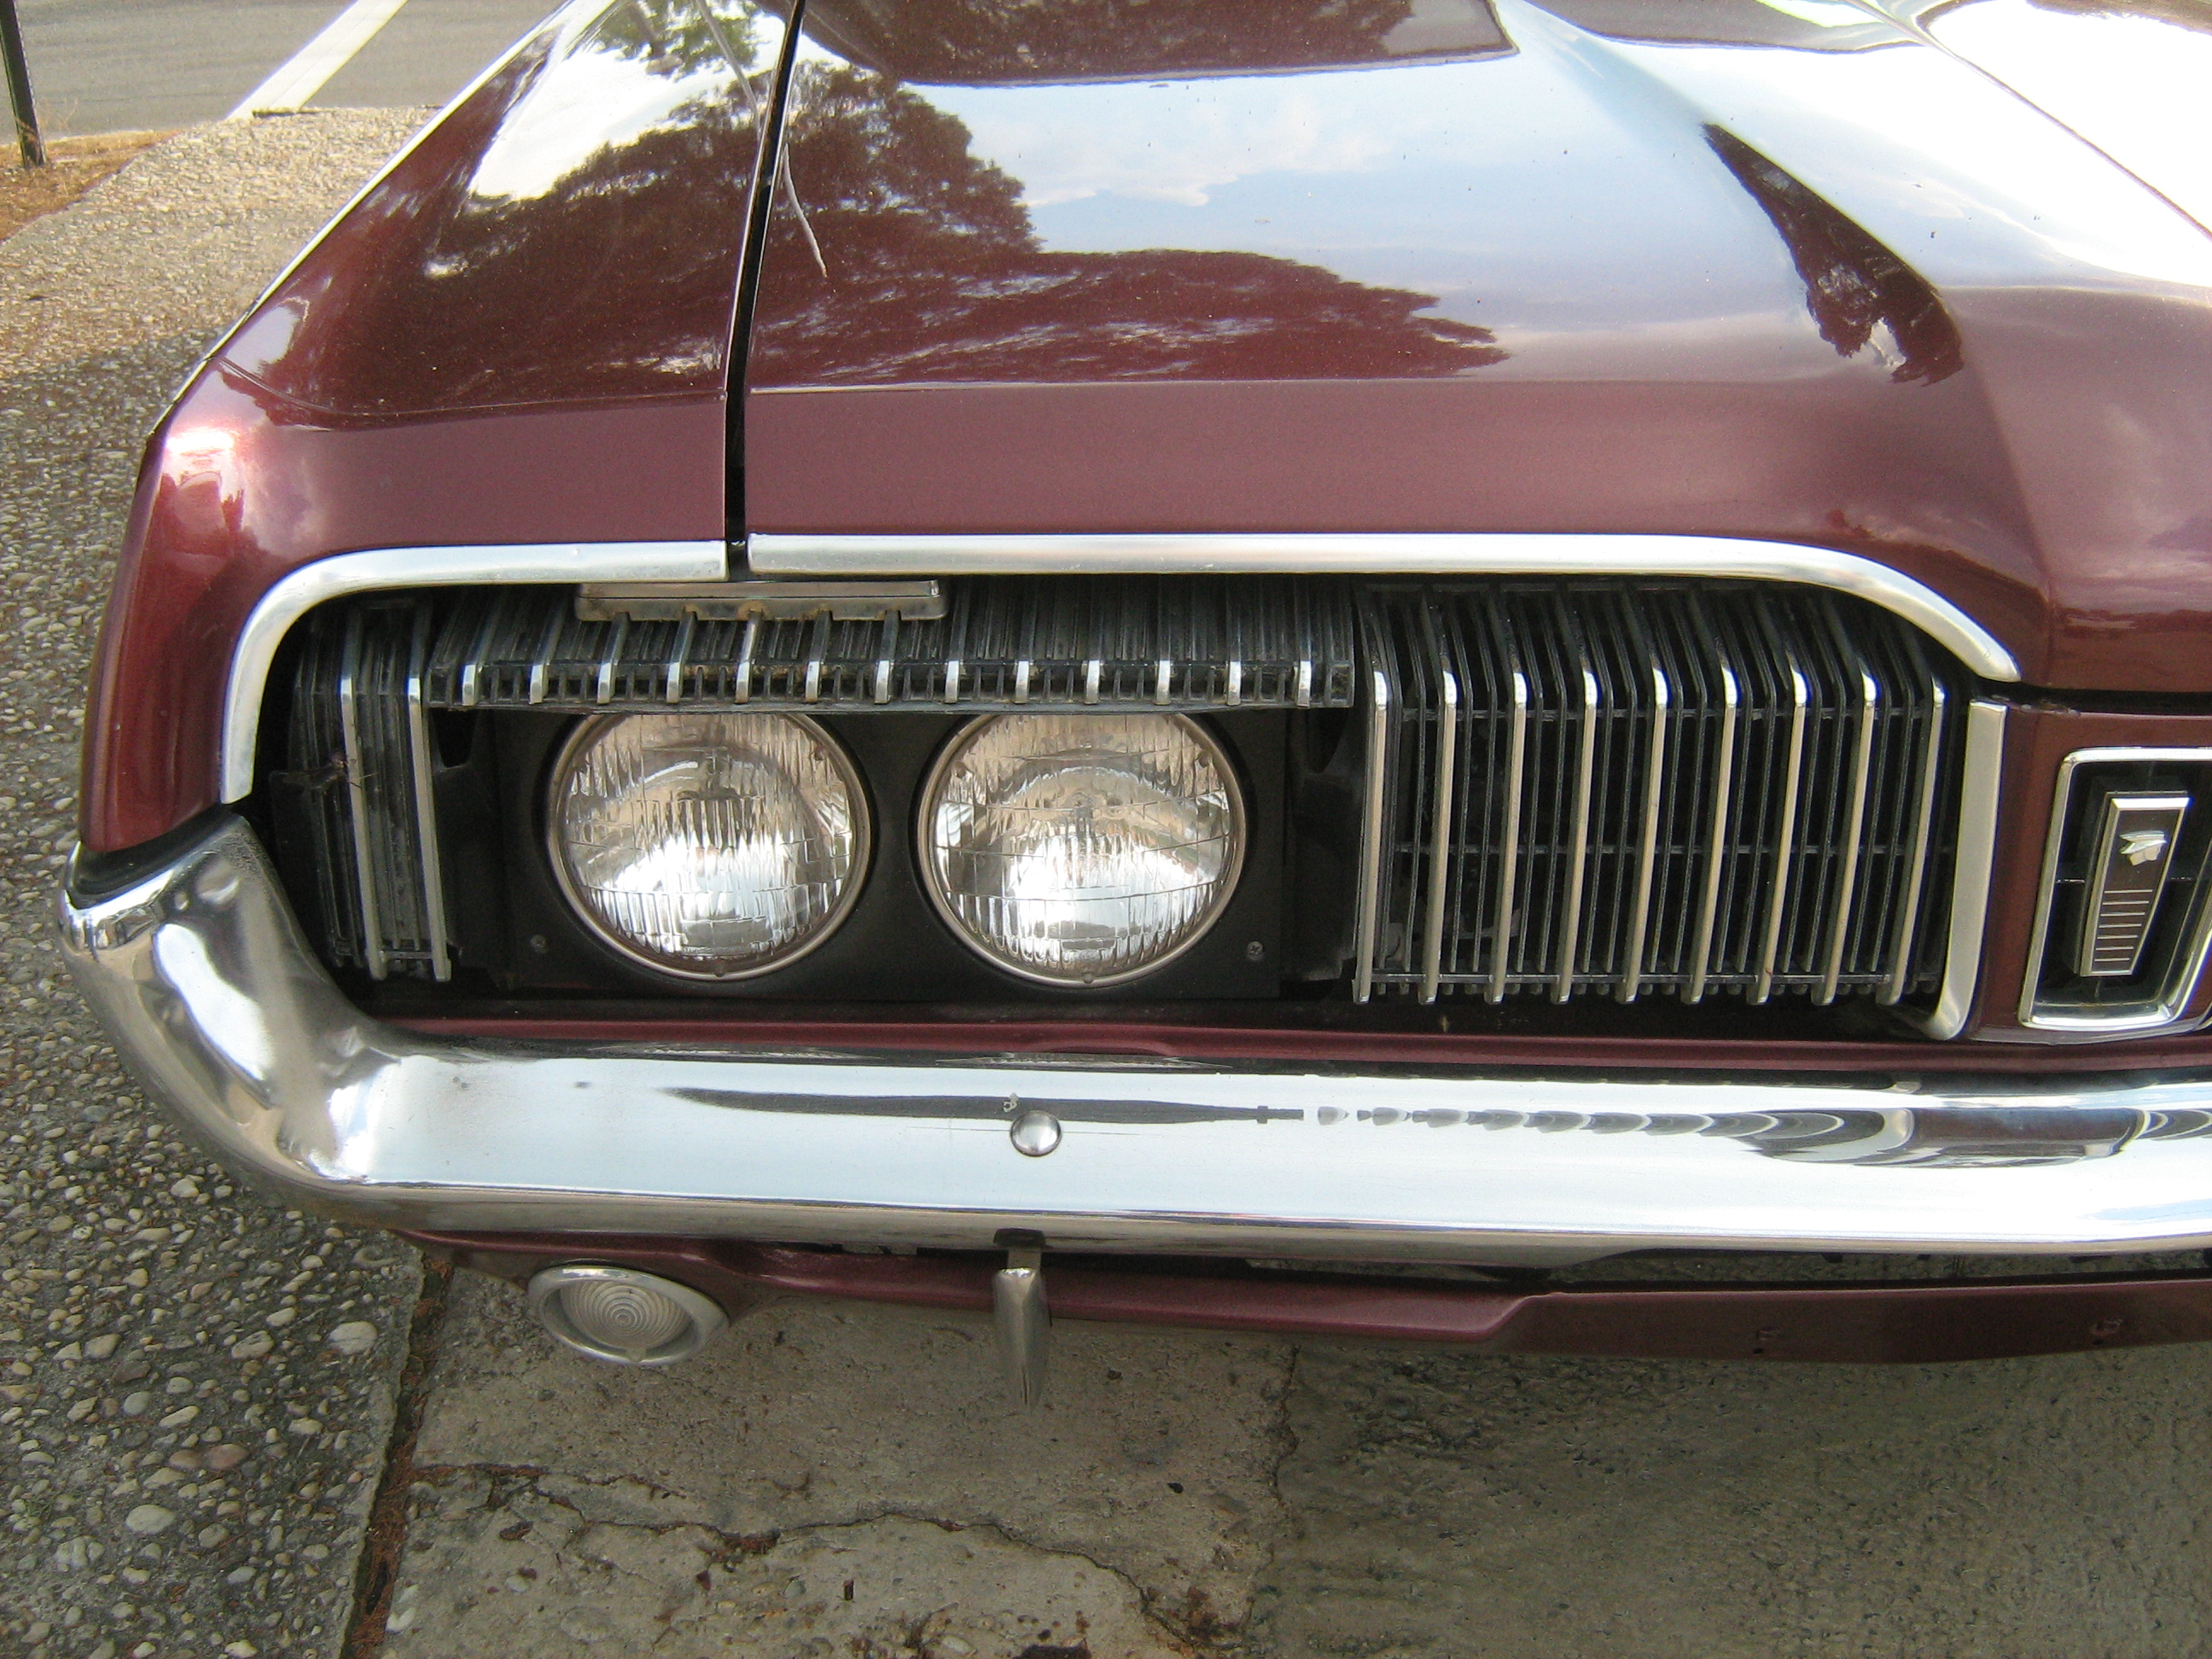 1967 Cougar Xr7 Wiring Diagrams For 67 Xr 7 File Burgundy Wikimedia Commons 2592x1944